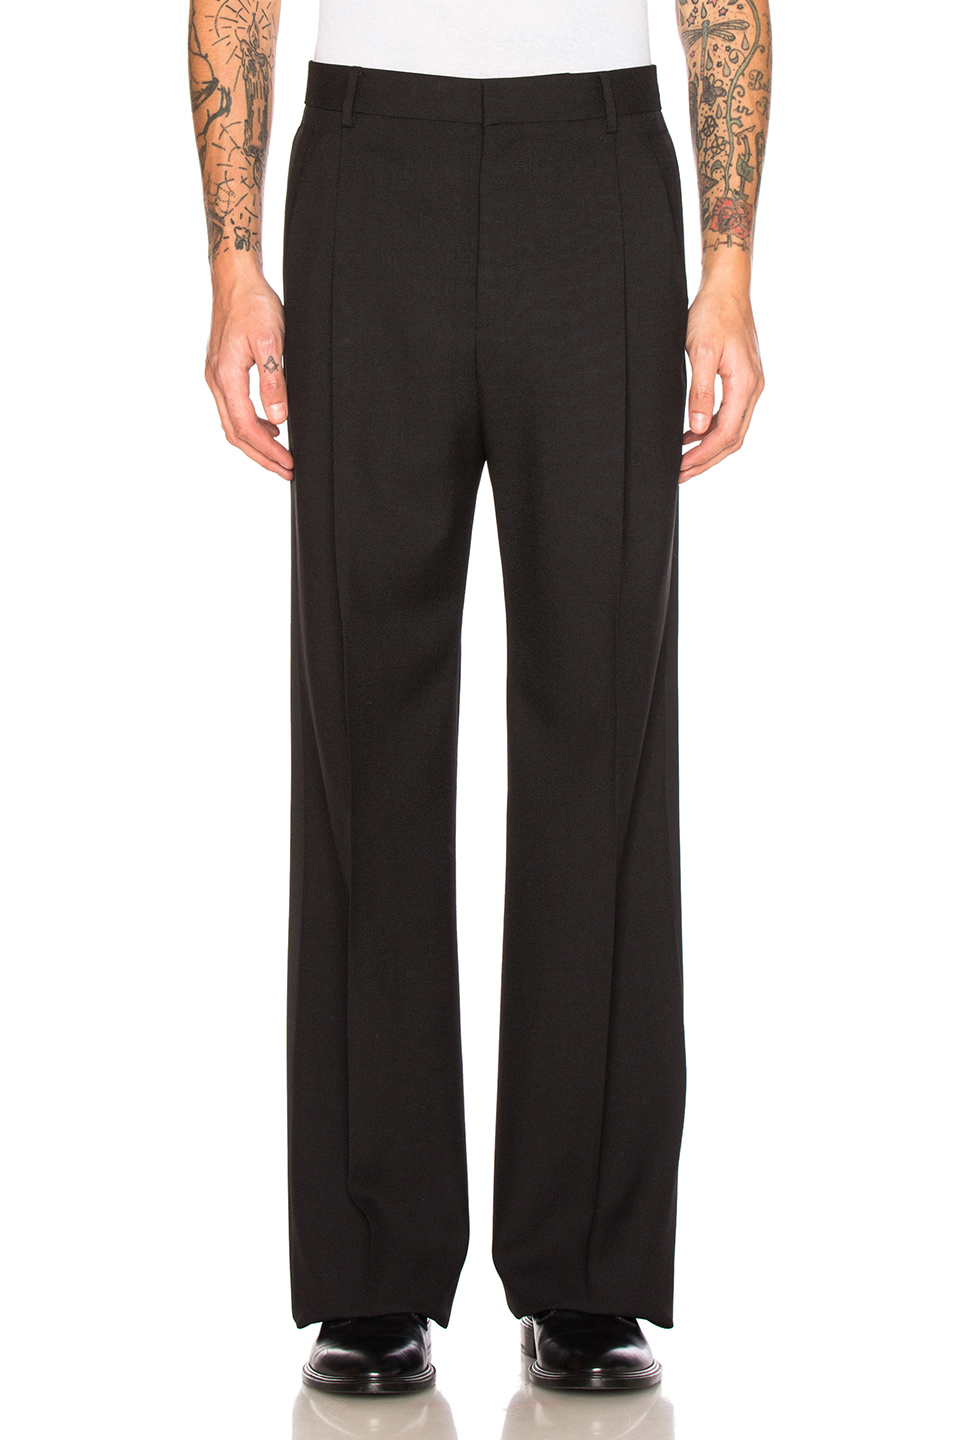 Givenchy Wide Leg Trousers in Black